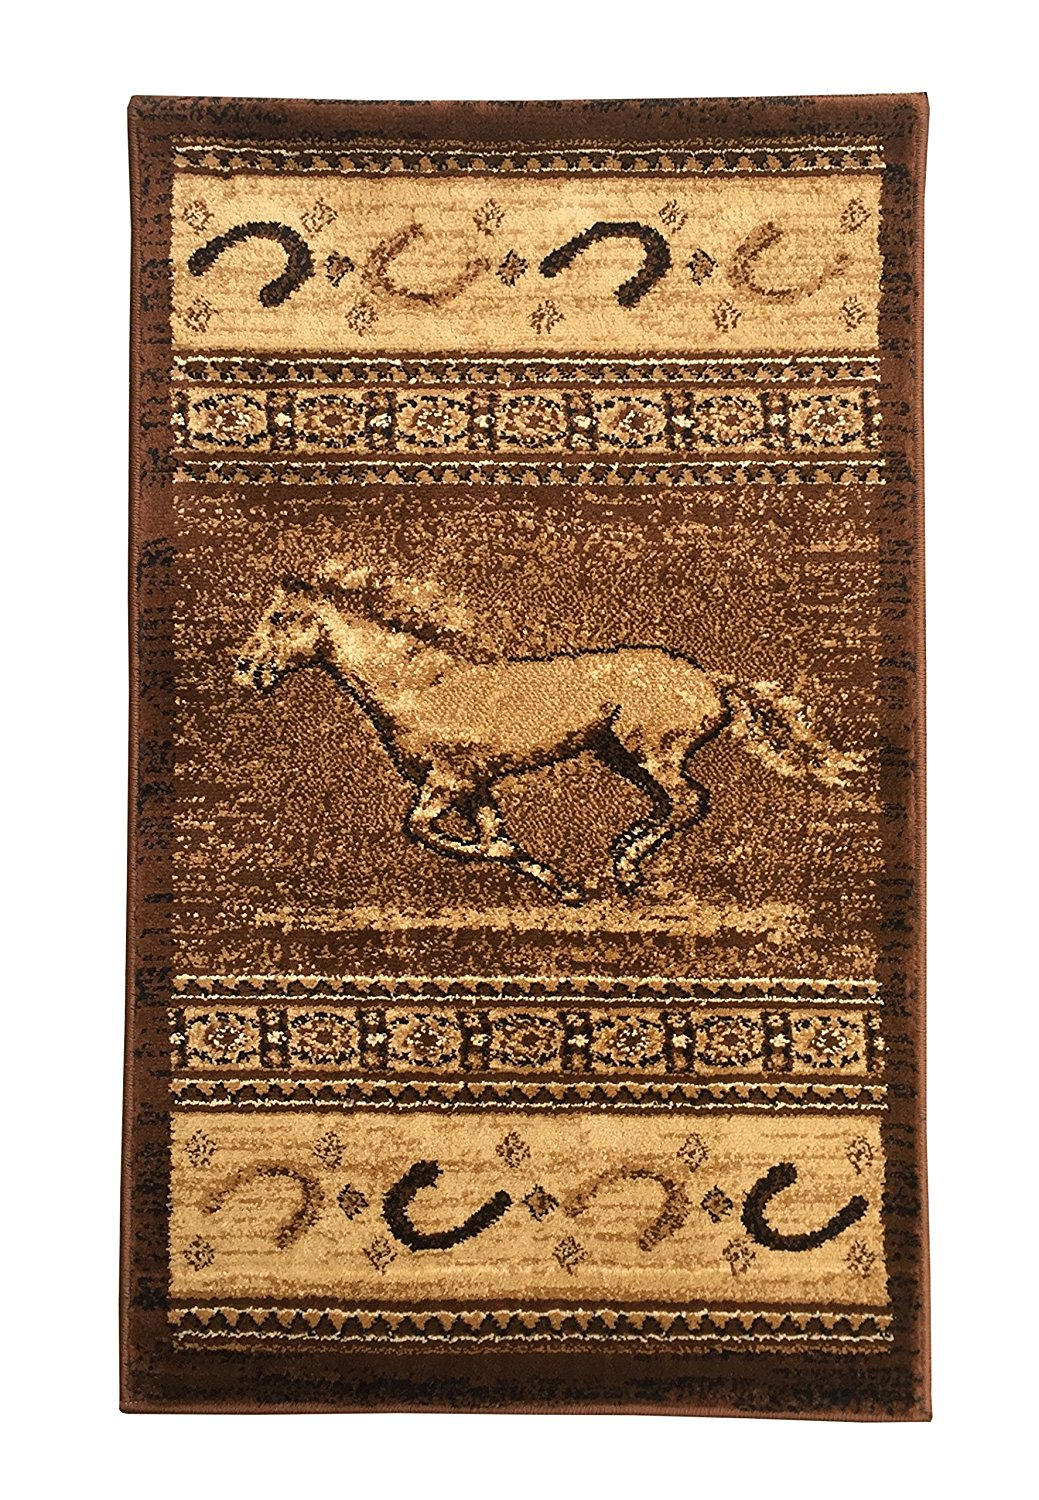 Get Quotations Rugs 4 Less Collection Horse Cowboy Western Cabin Style Lodge Door Mat Area Rug Design R4l